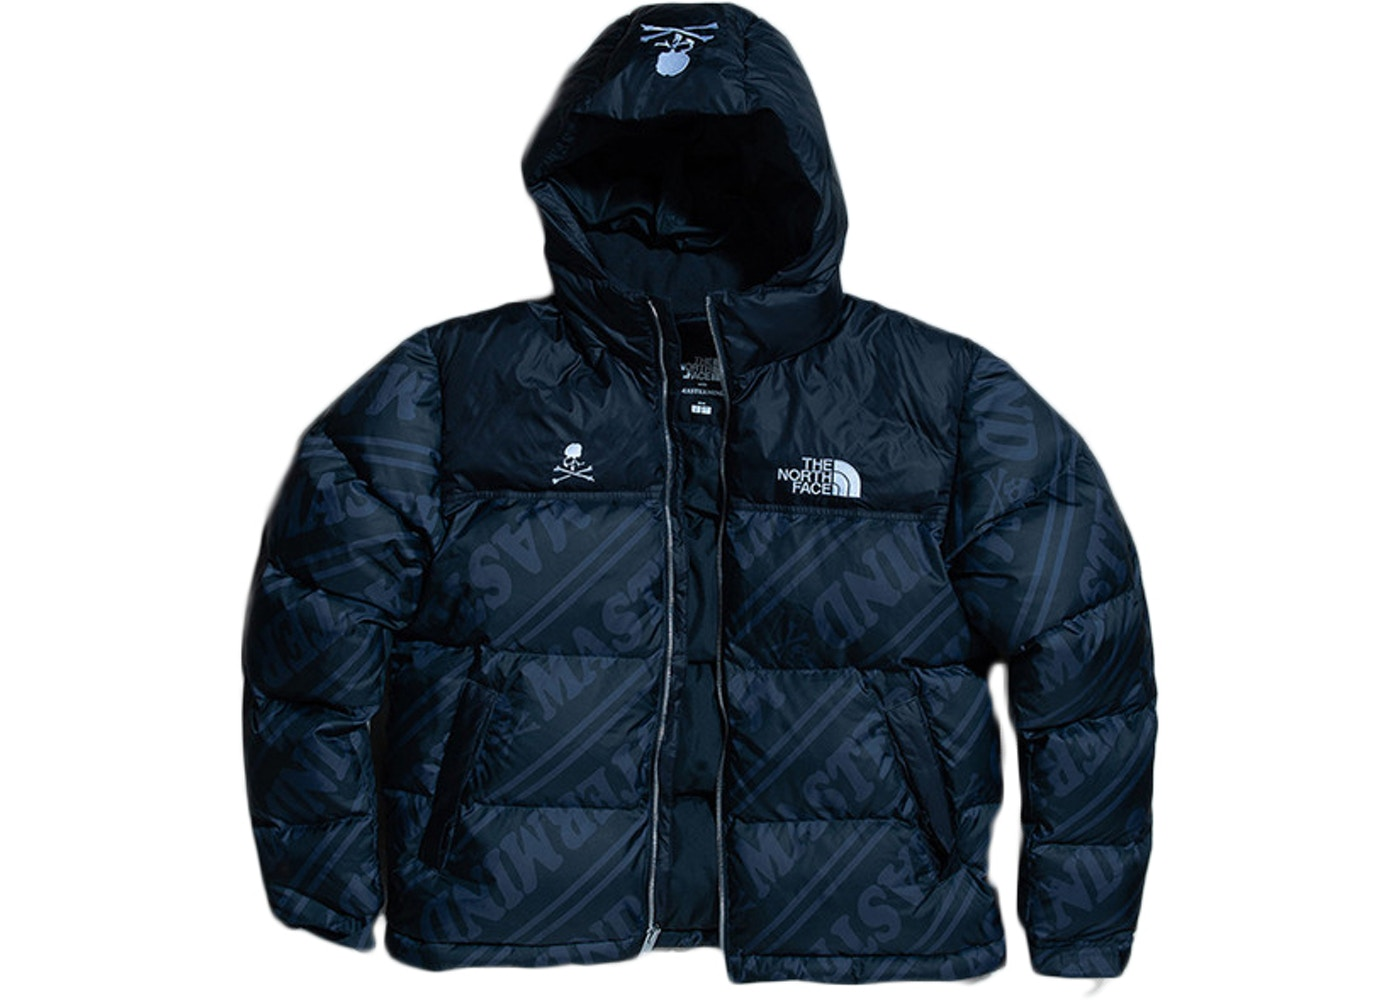 2d573bbe40 Mastermind The North Face Nuptse Jacket Black • Buy Sell on StockX